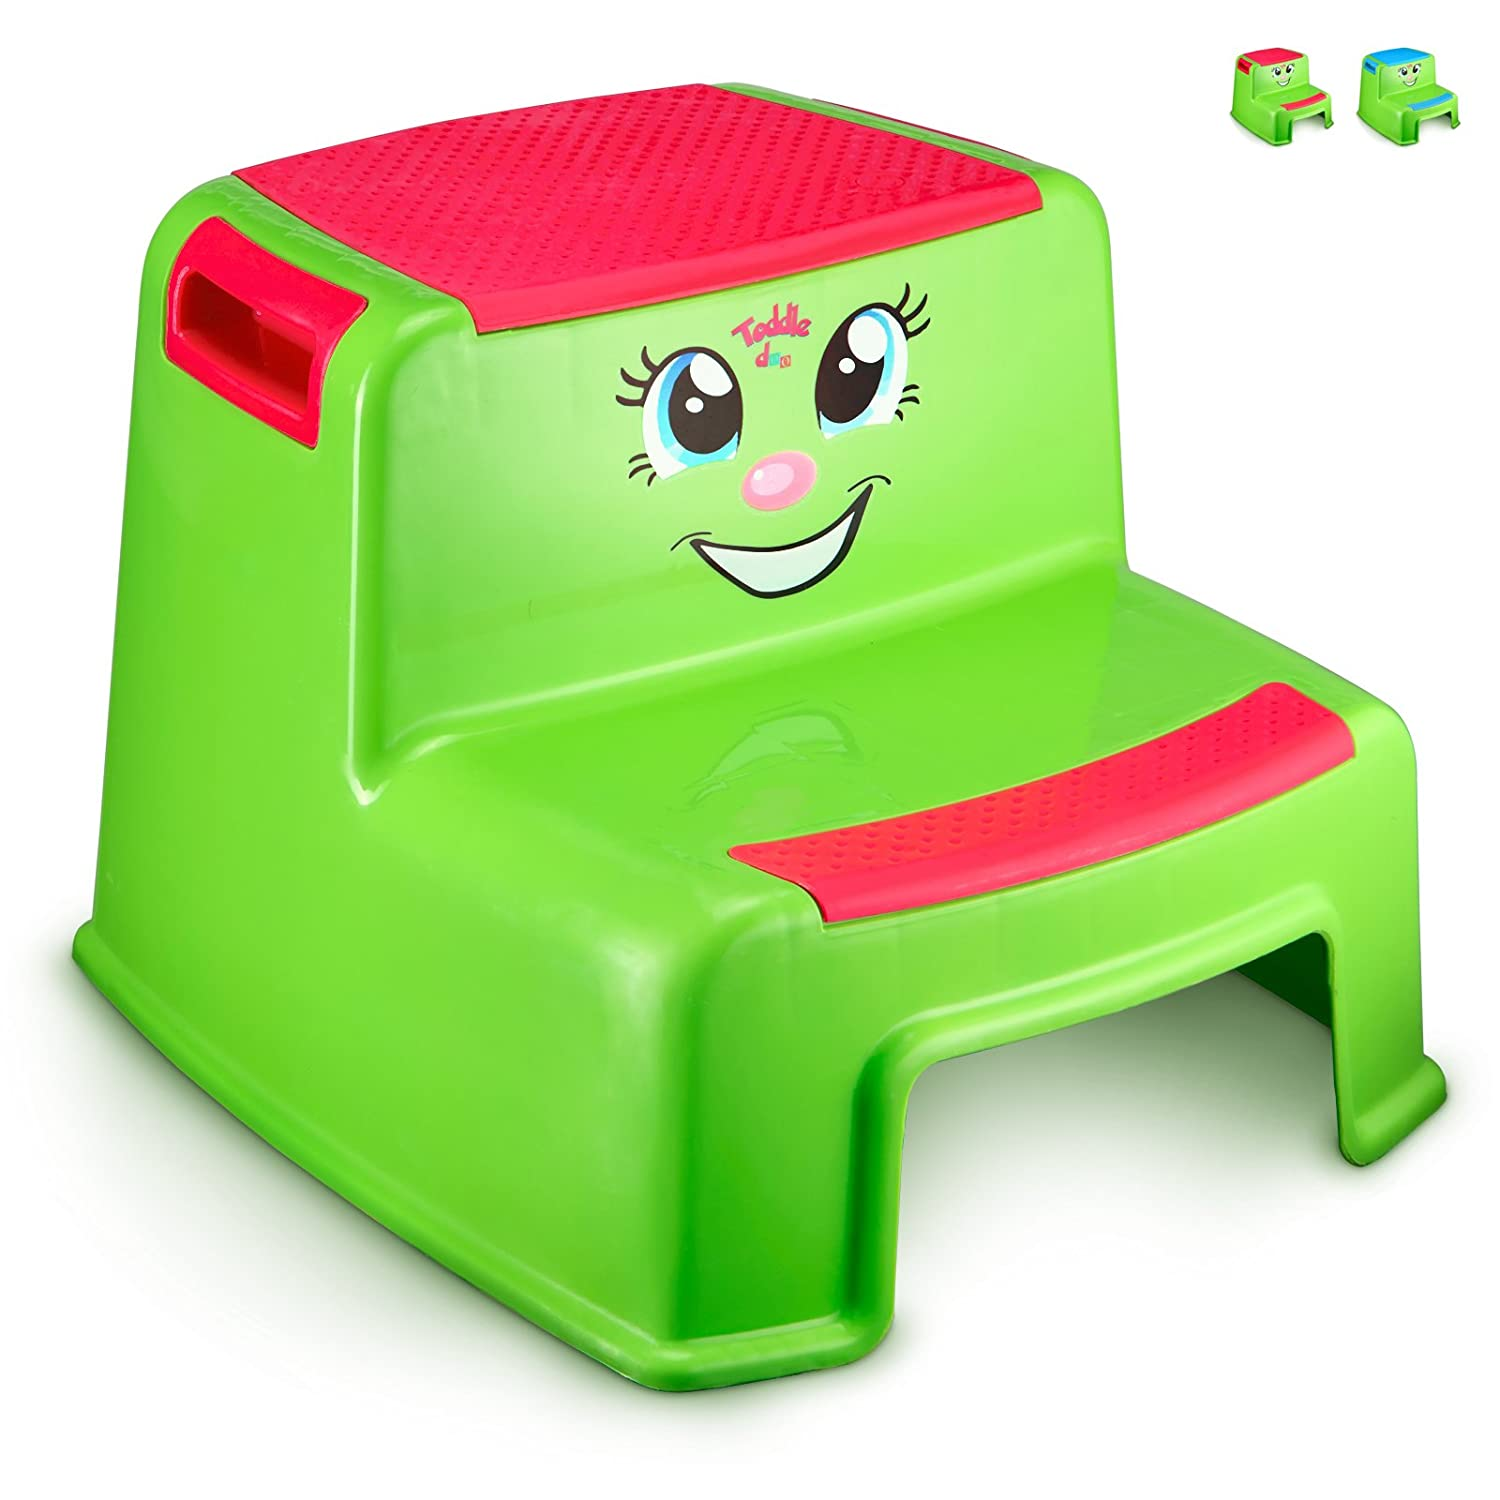 Step Stools for Kids - Toddlers Potty Step Stool for Toilet Training - Dual Height Two-Step Stairs Stool - Lightweight Cute Design for Use in Bathroom and Kitchen sink - Hot Pink Girls- By Toddle doo toddlestool-red-1